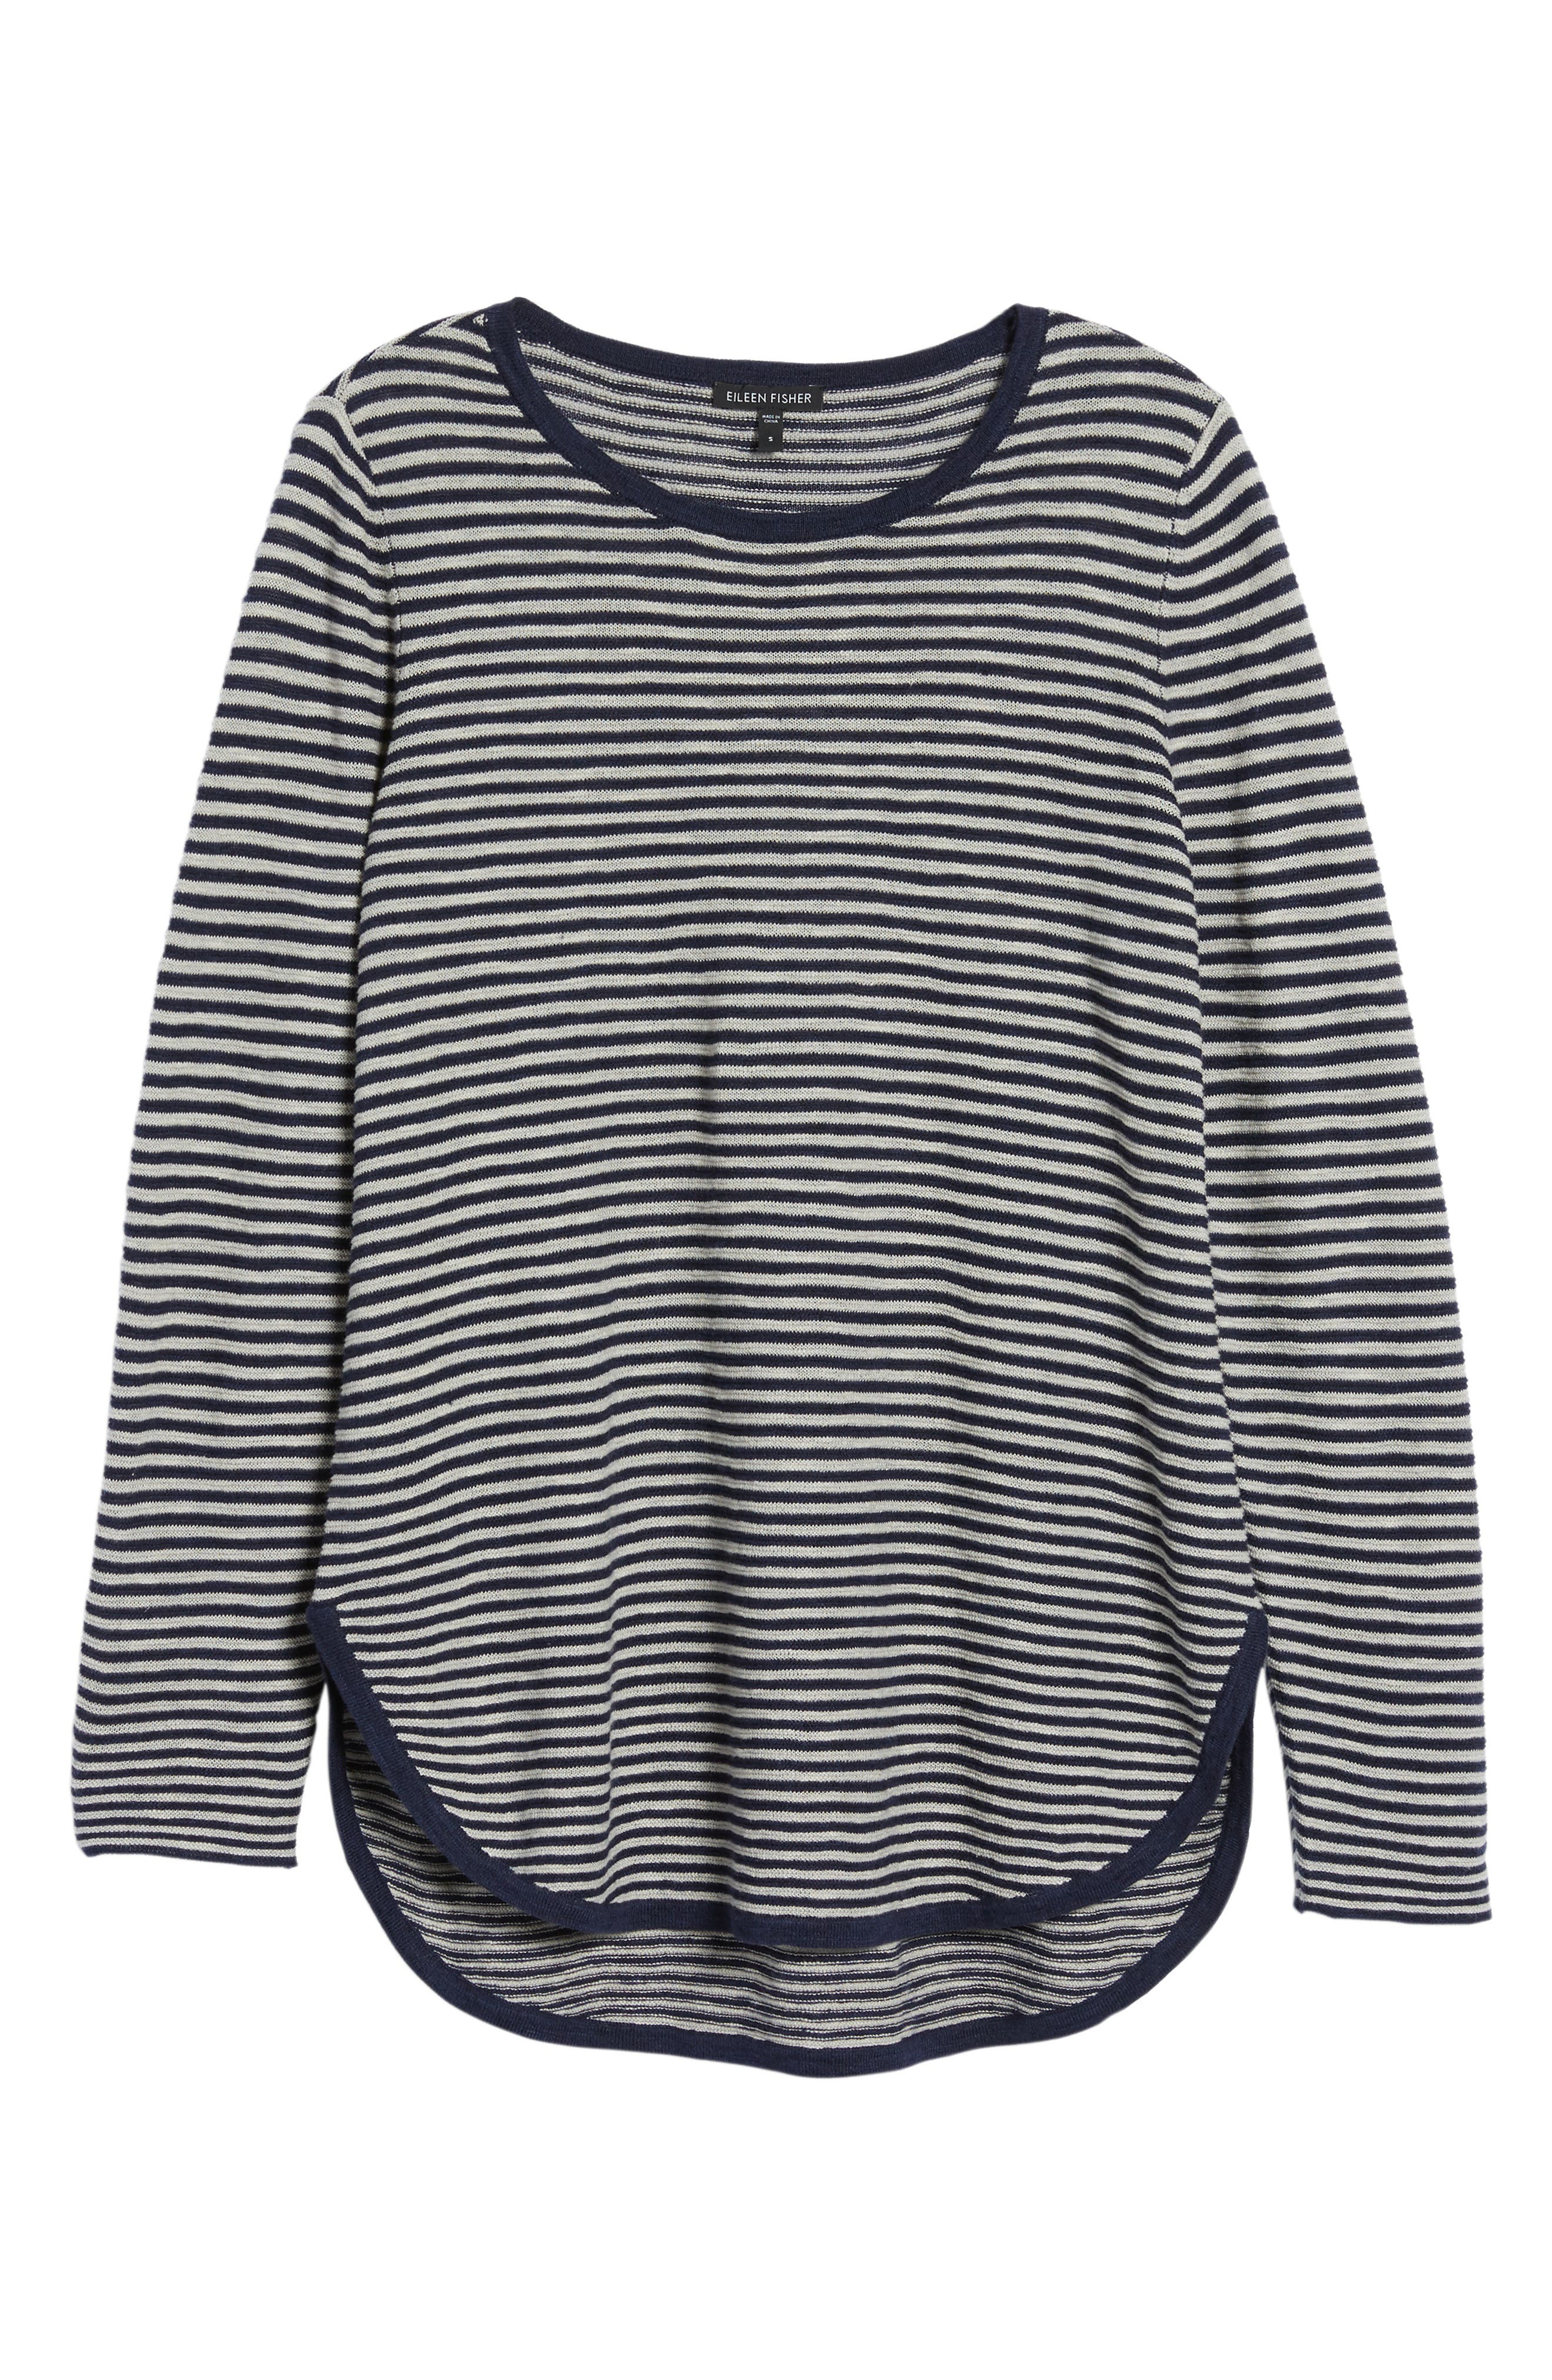 Stripe Organic Linen & Cotton Sweater,                             Alternate thumbnail 6, color,                             Midnight